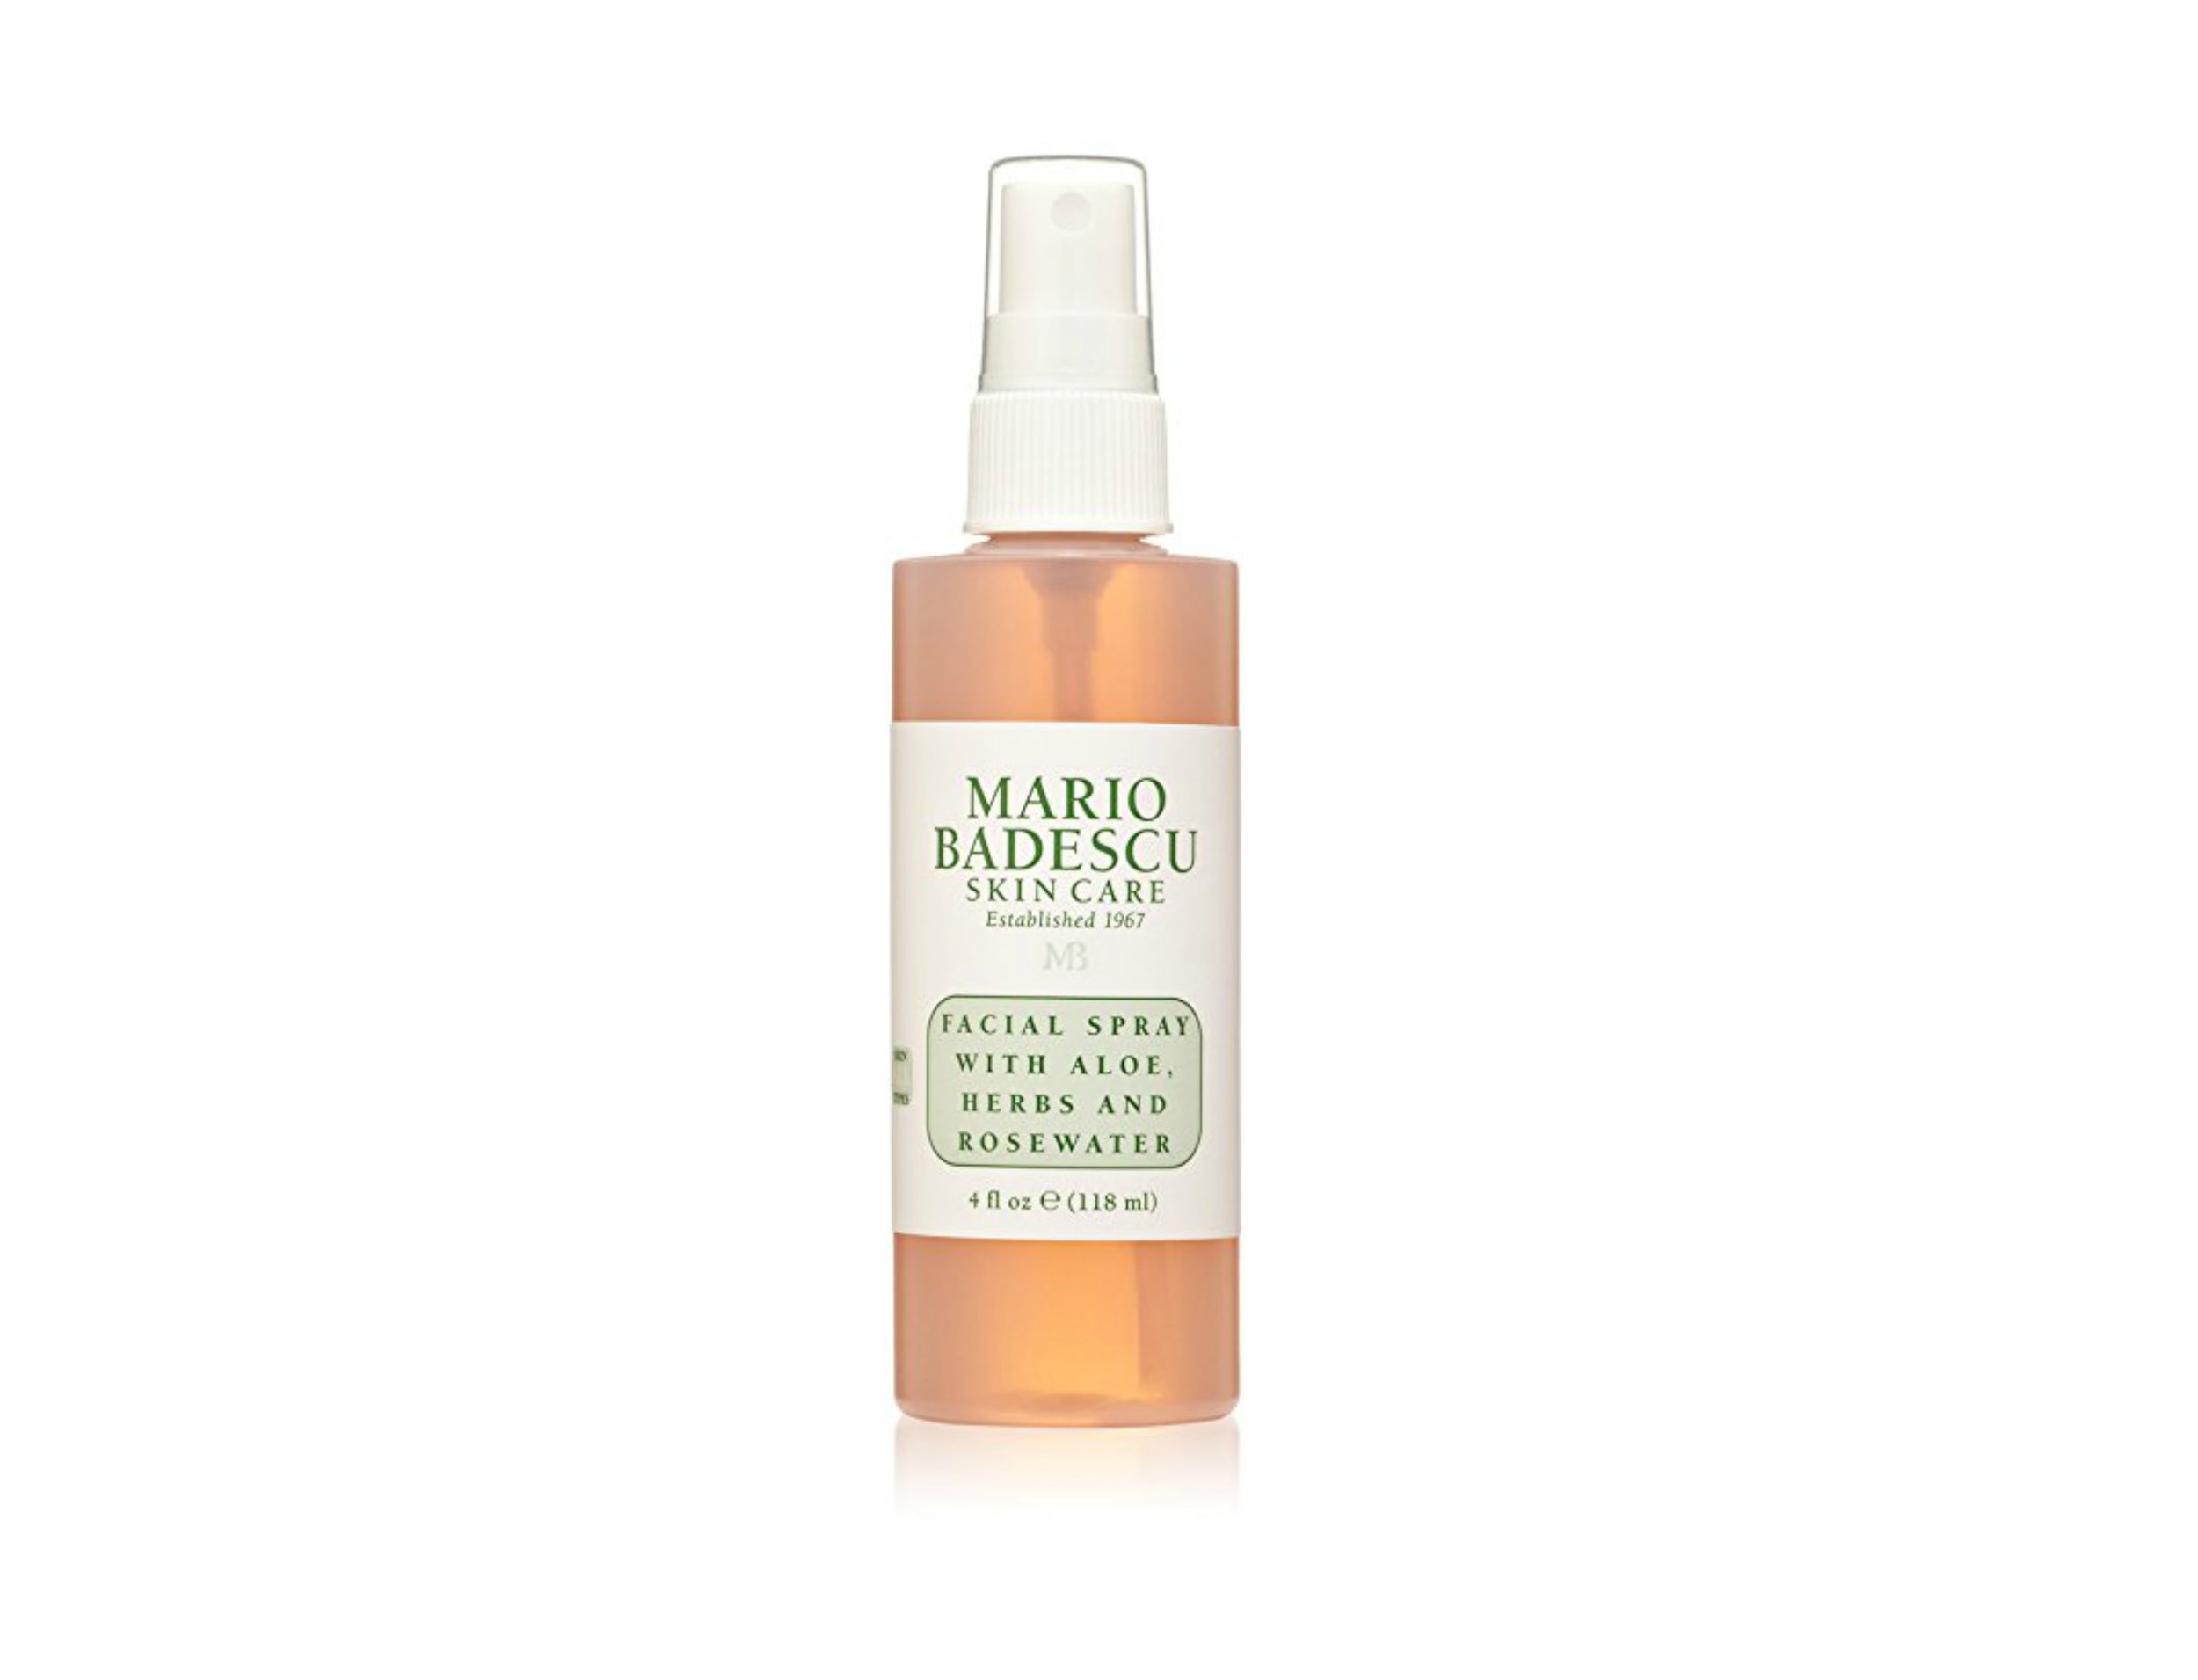 Mario Badescu, Facial Spray with Aloe Herbs and Rosewater - So I am one of those lucky people with overactive pores at night (did you catch the sarcasm?), so I wake up with a super oily face, but after I cleanse my I still need some light moisturizer! So that's where this superhero Rose Water Spray comes in, it creates the most refreshing and soft skin. Its also great for after long travels and you need a little uplift! Or to seal your makeup.